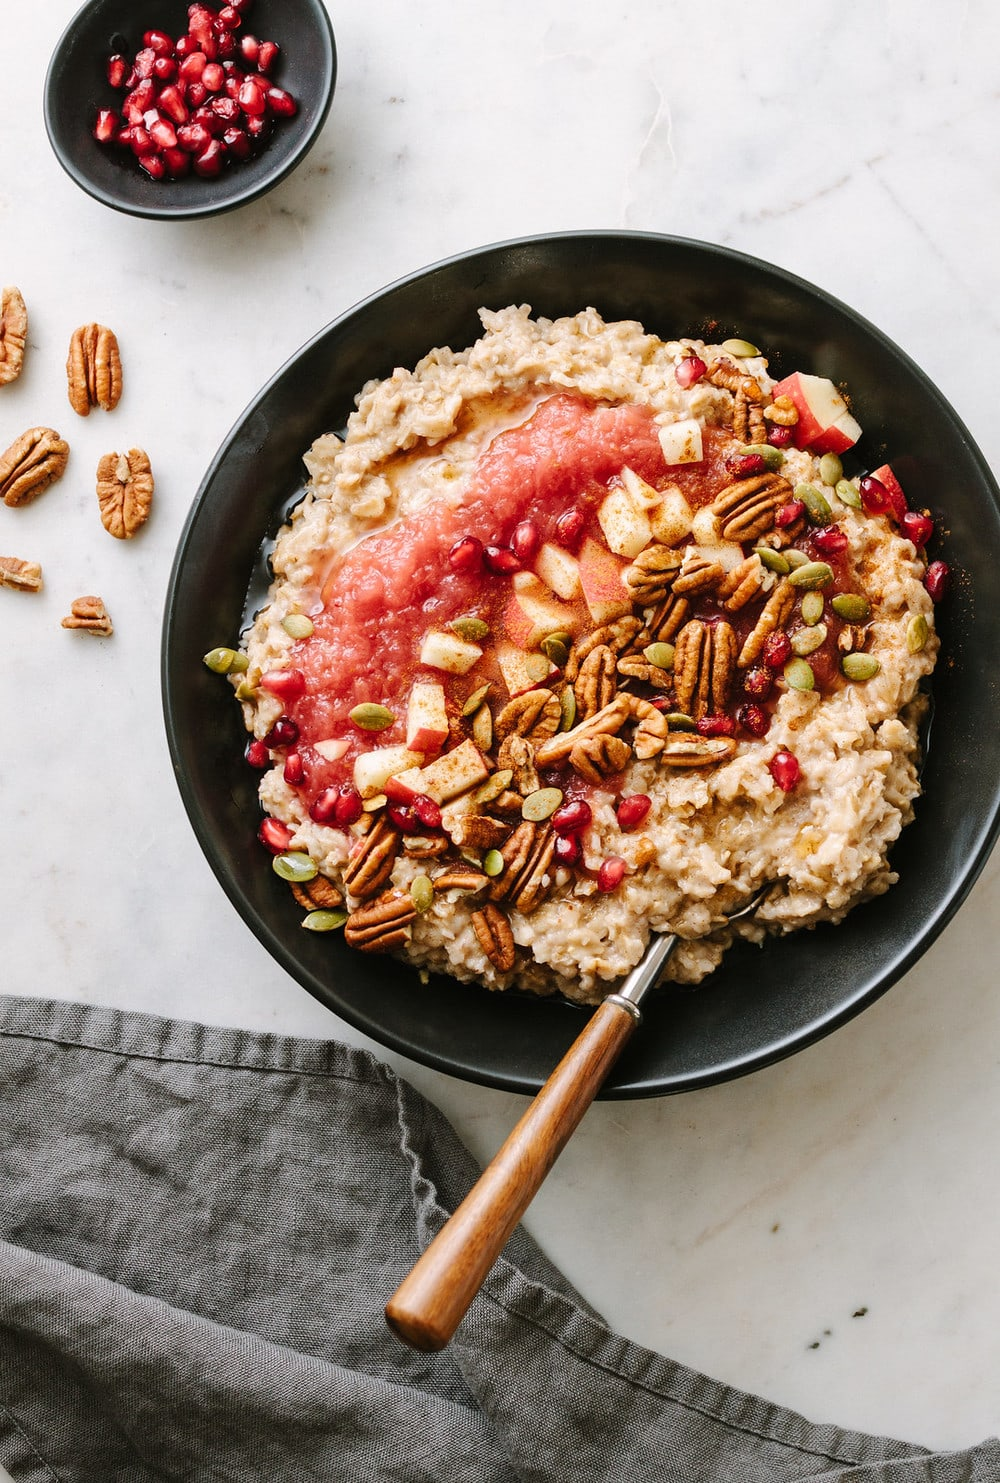 cinnamon oatmeal with applesauce, pecans, apples, pomegranetes in a black bowl